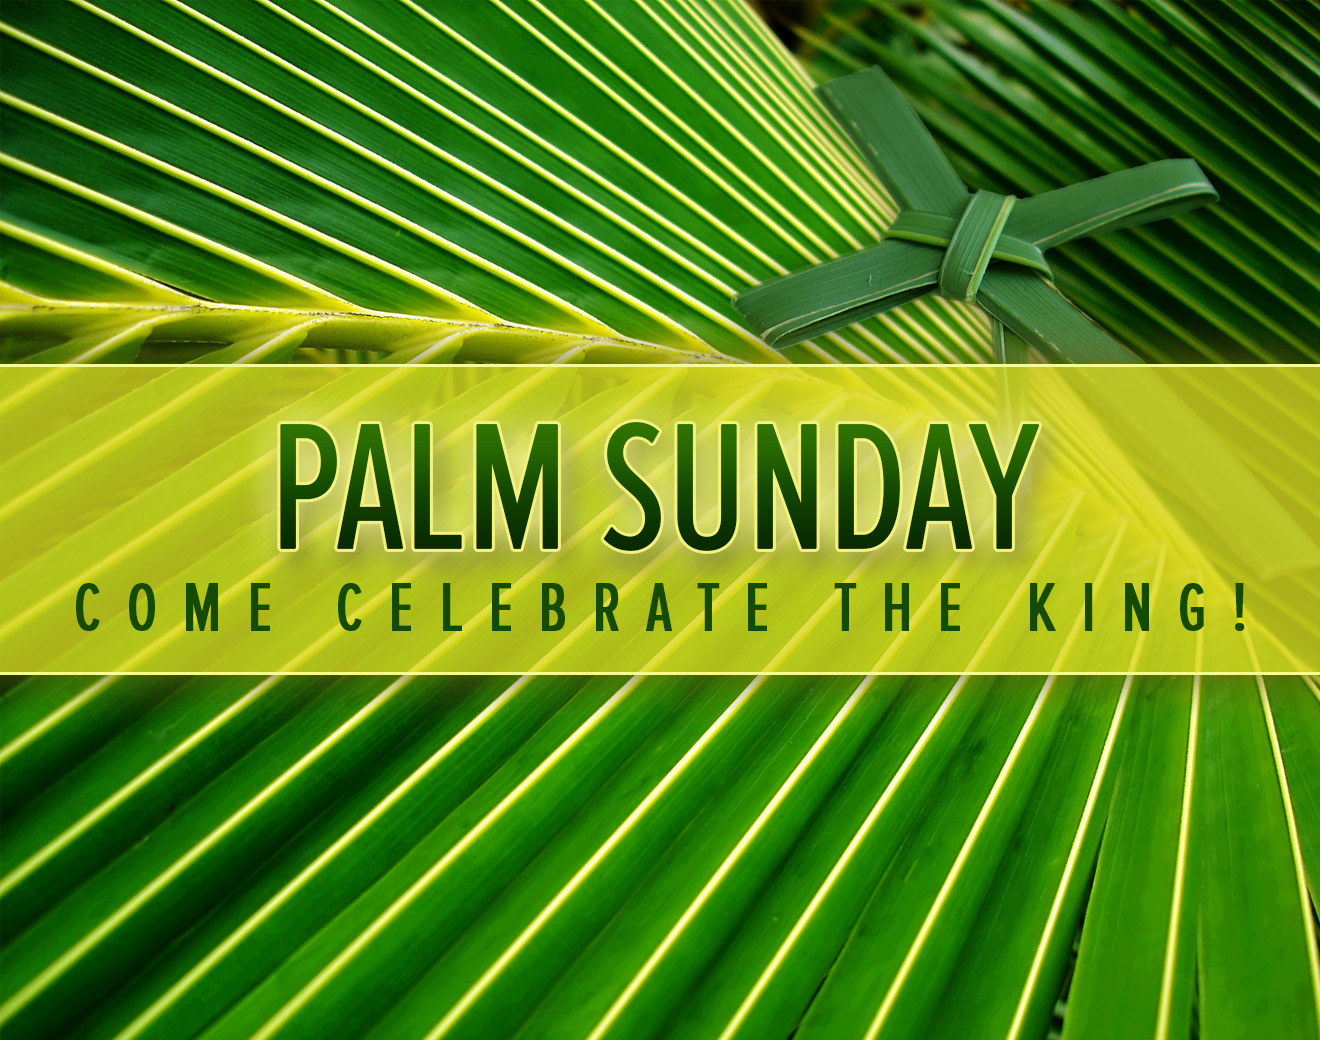 Palm Sunday Celebration March 25, 2018.